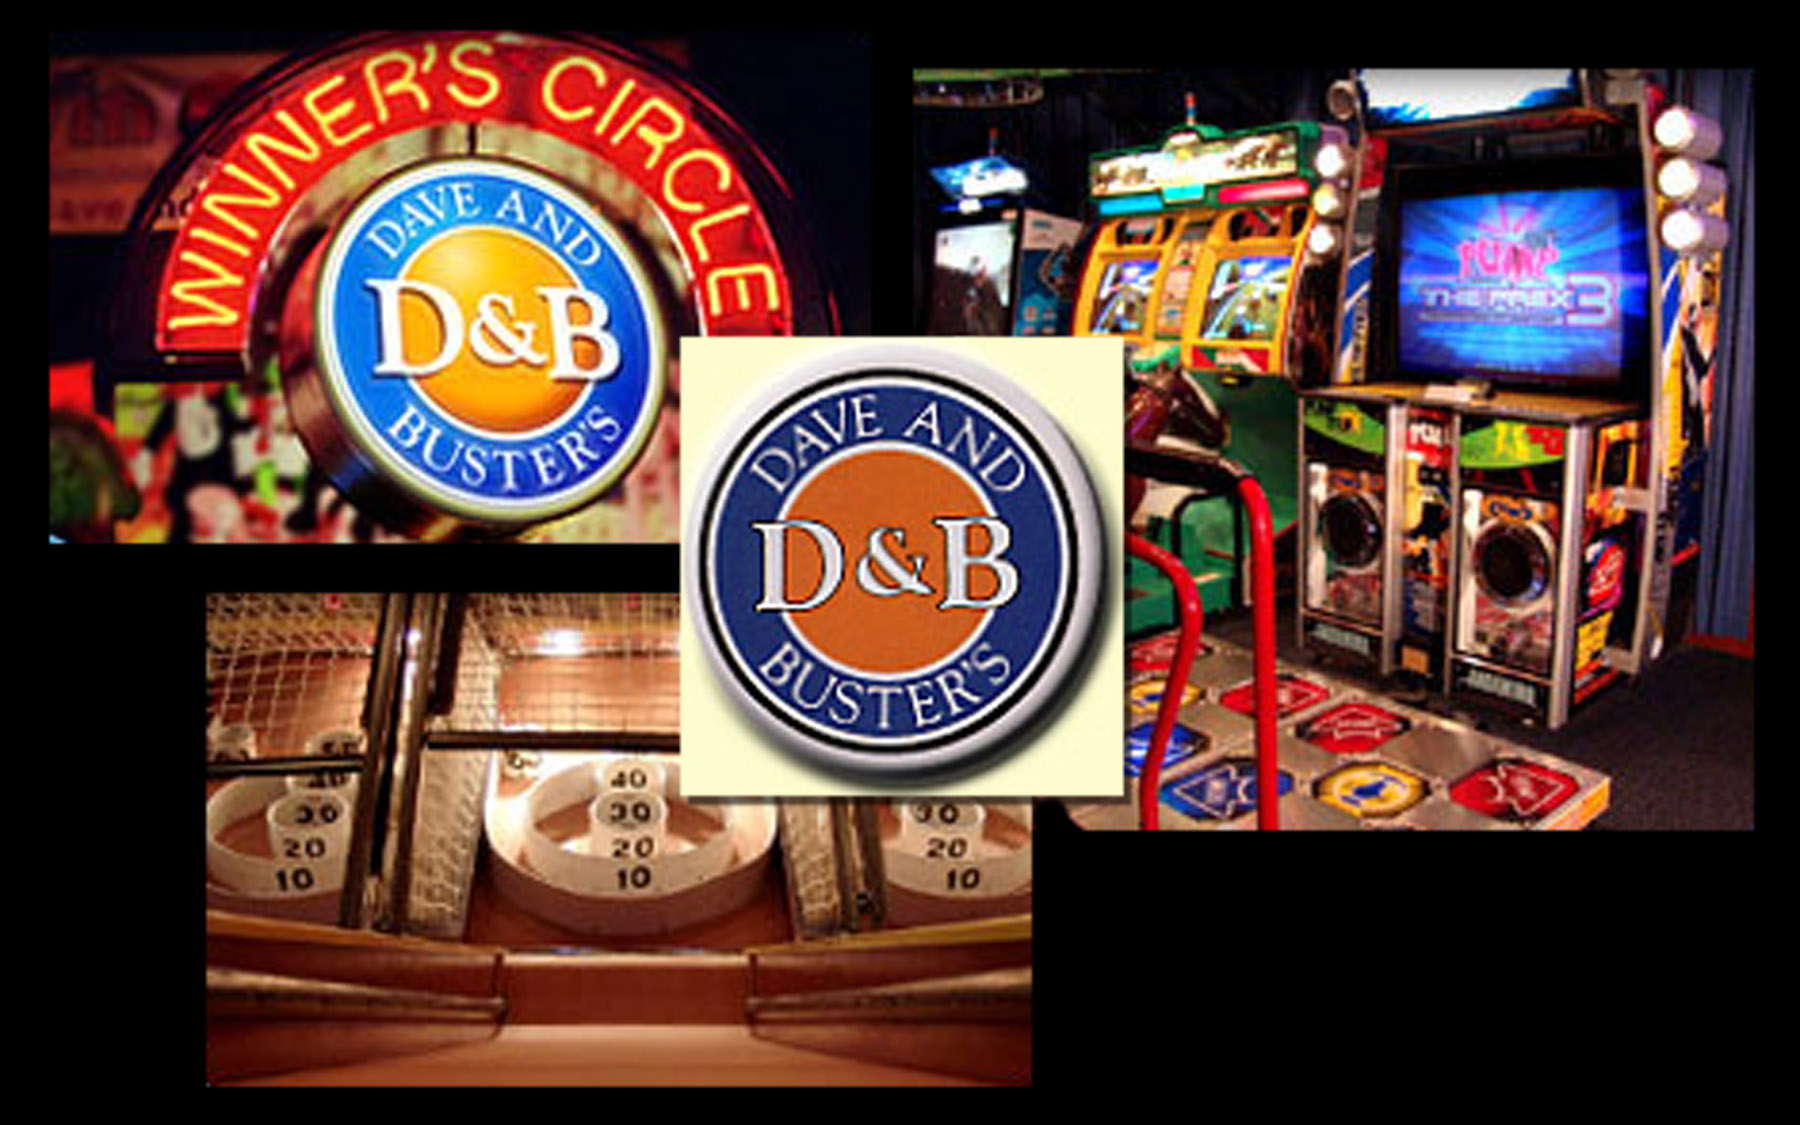 Dave & Buster's in Concord, ON